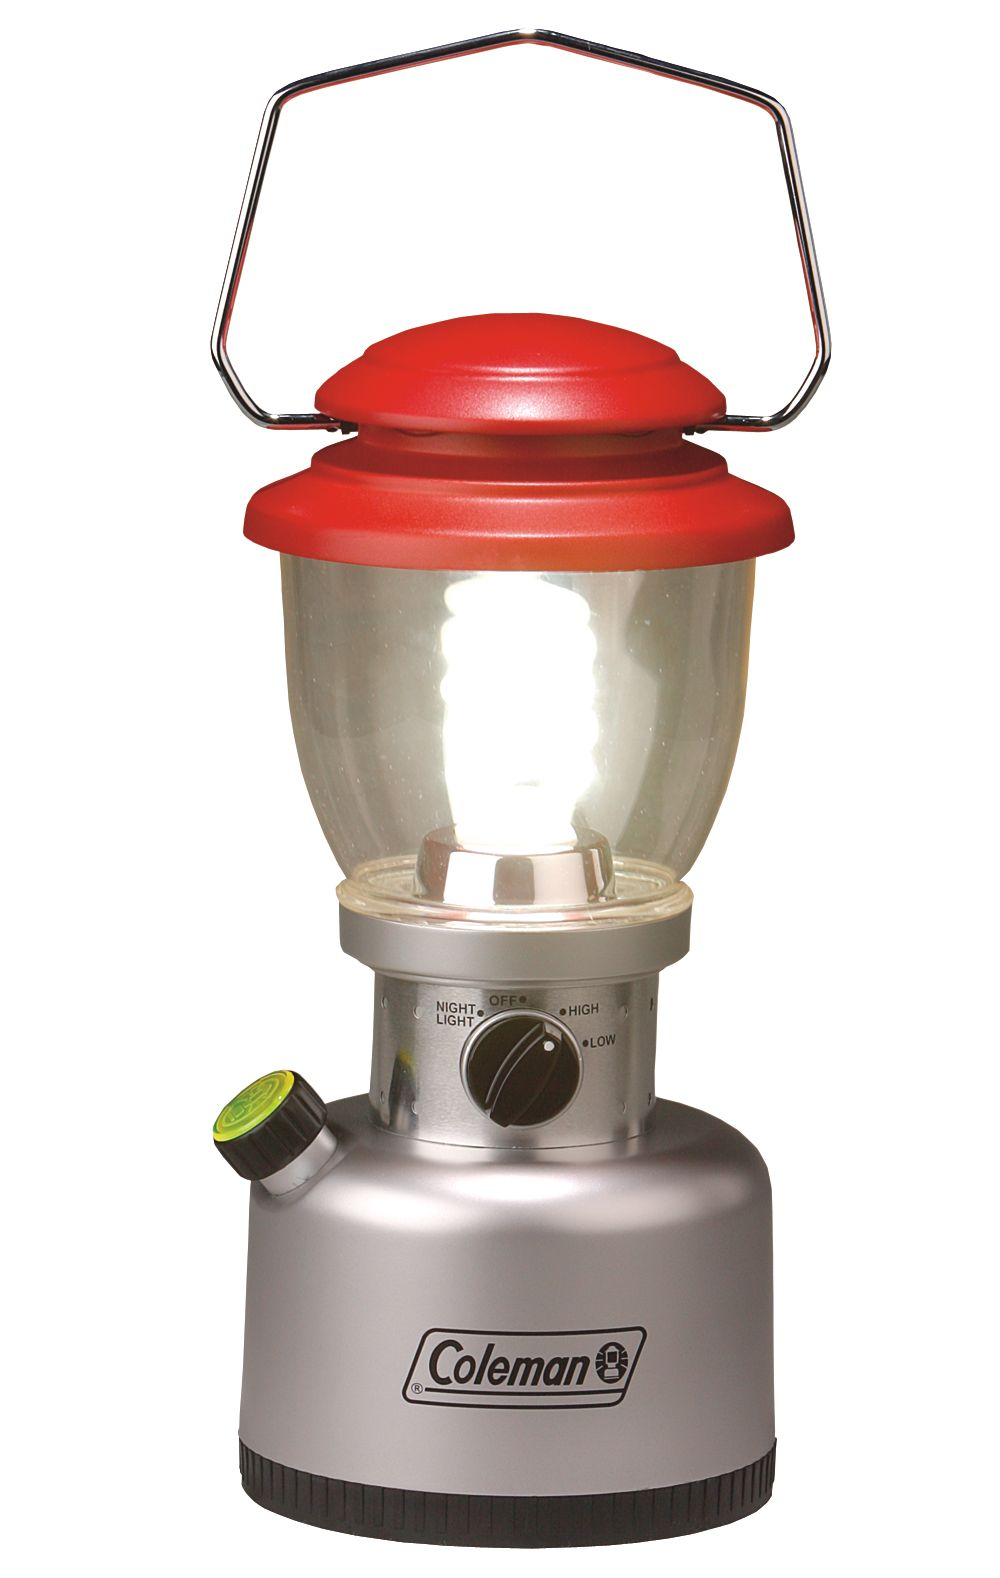 Retro Rechargeable Family-Size Lantern